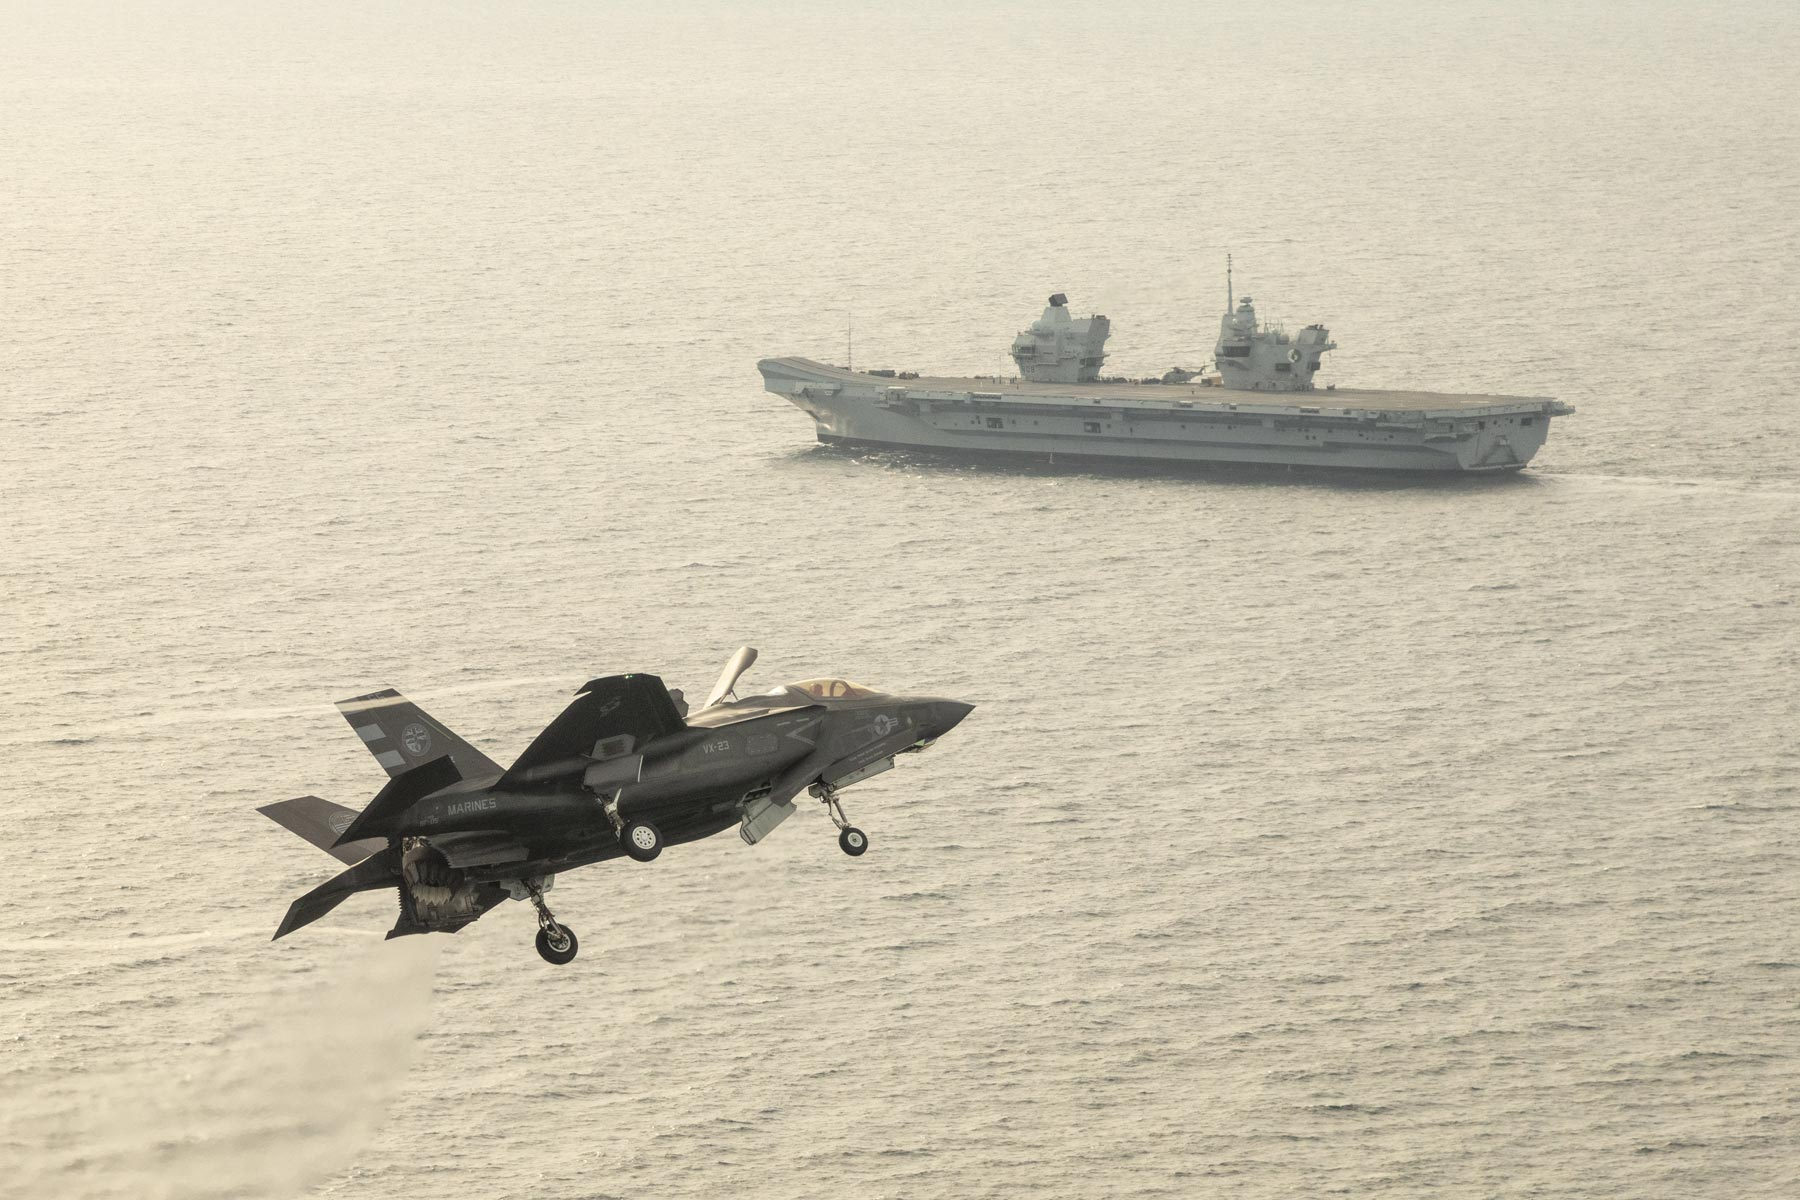 A US Marine F-35 Squadron Will Deploy on a British Aircraft Carrier